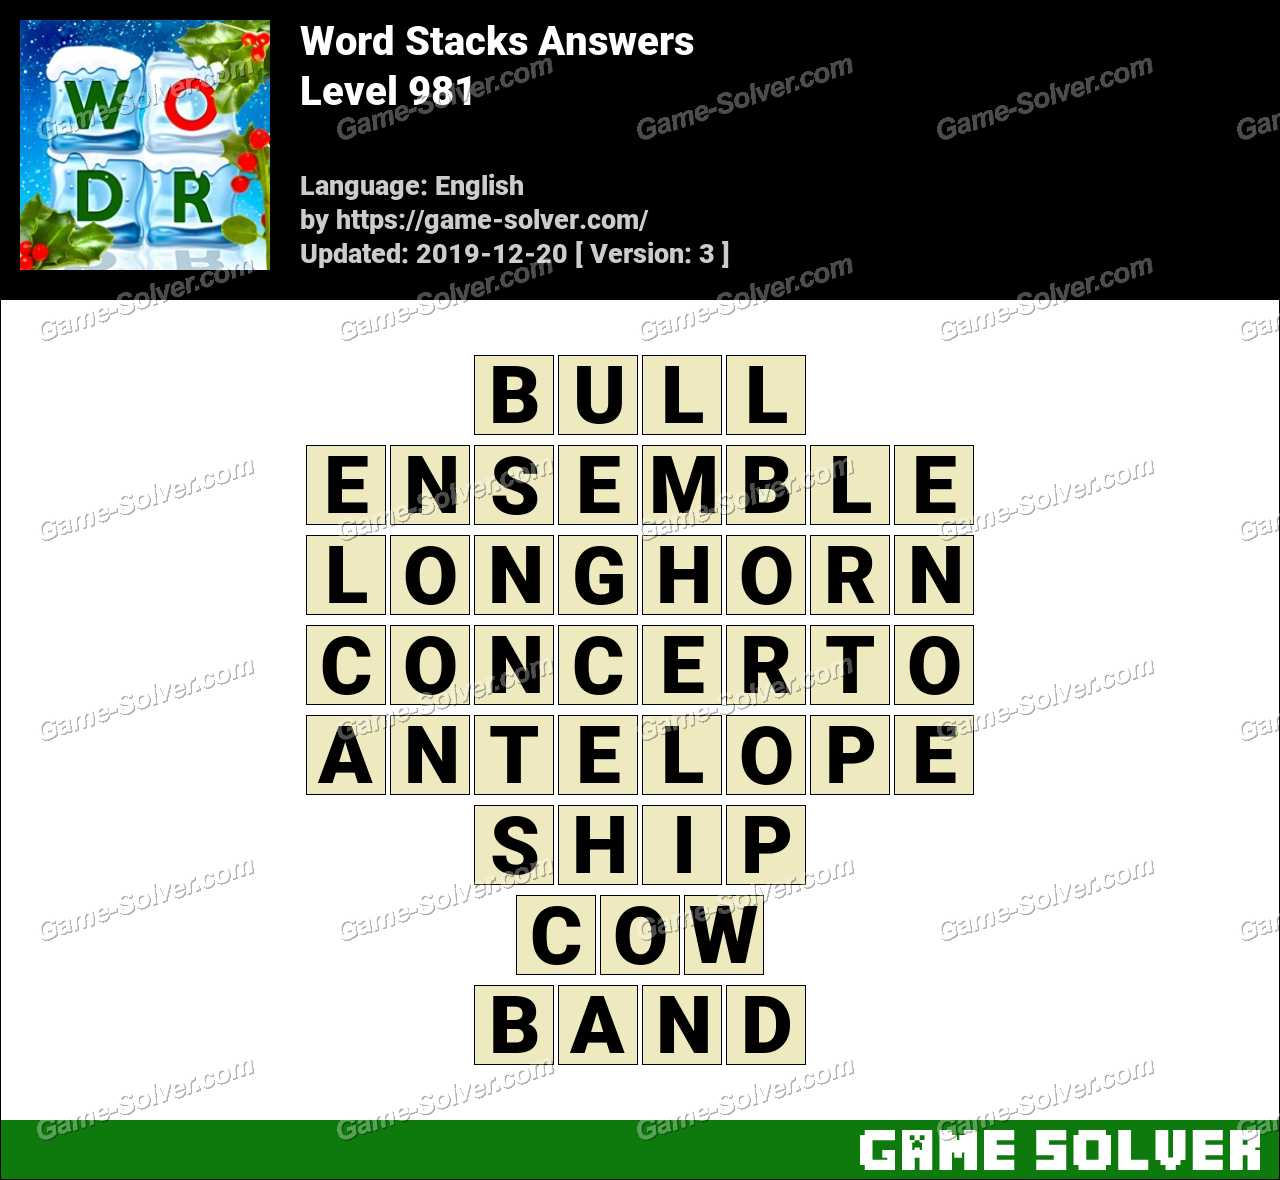 Word Stacks Level 981 Answers